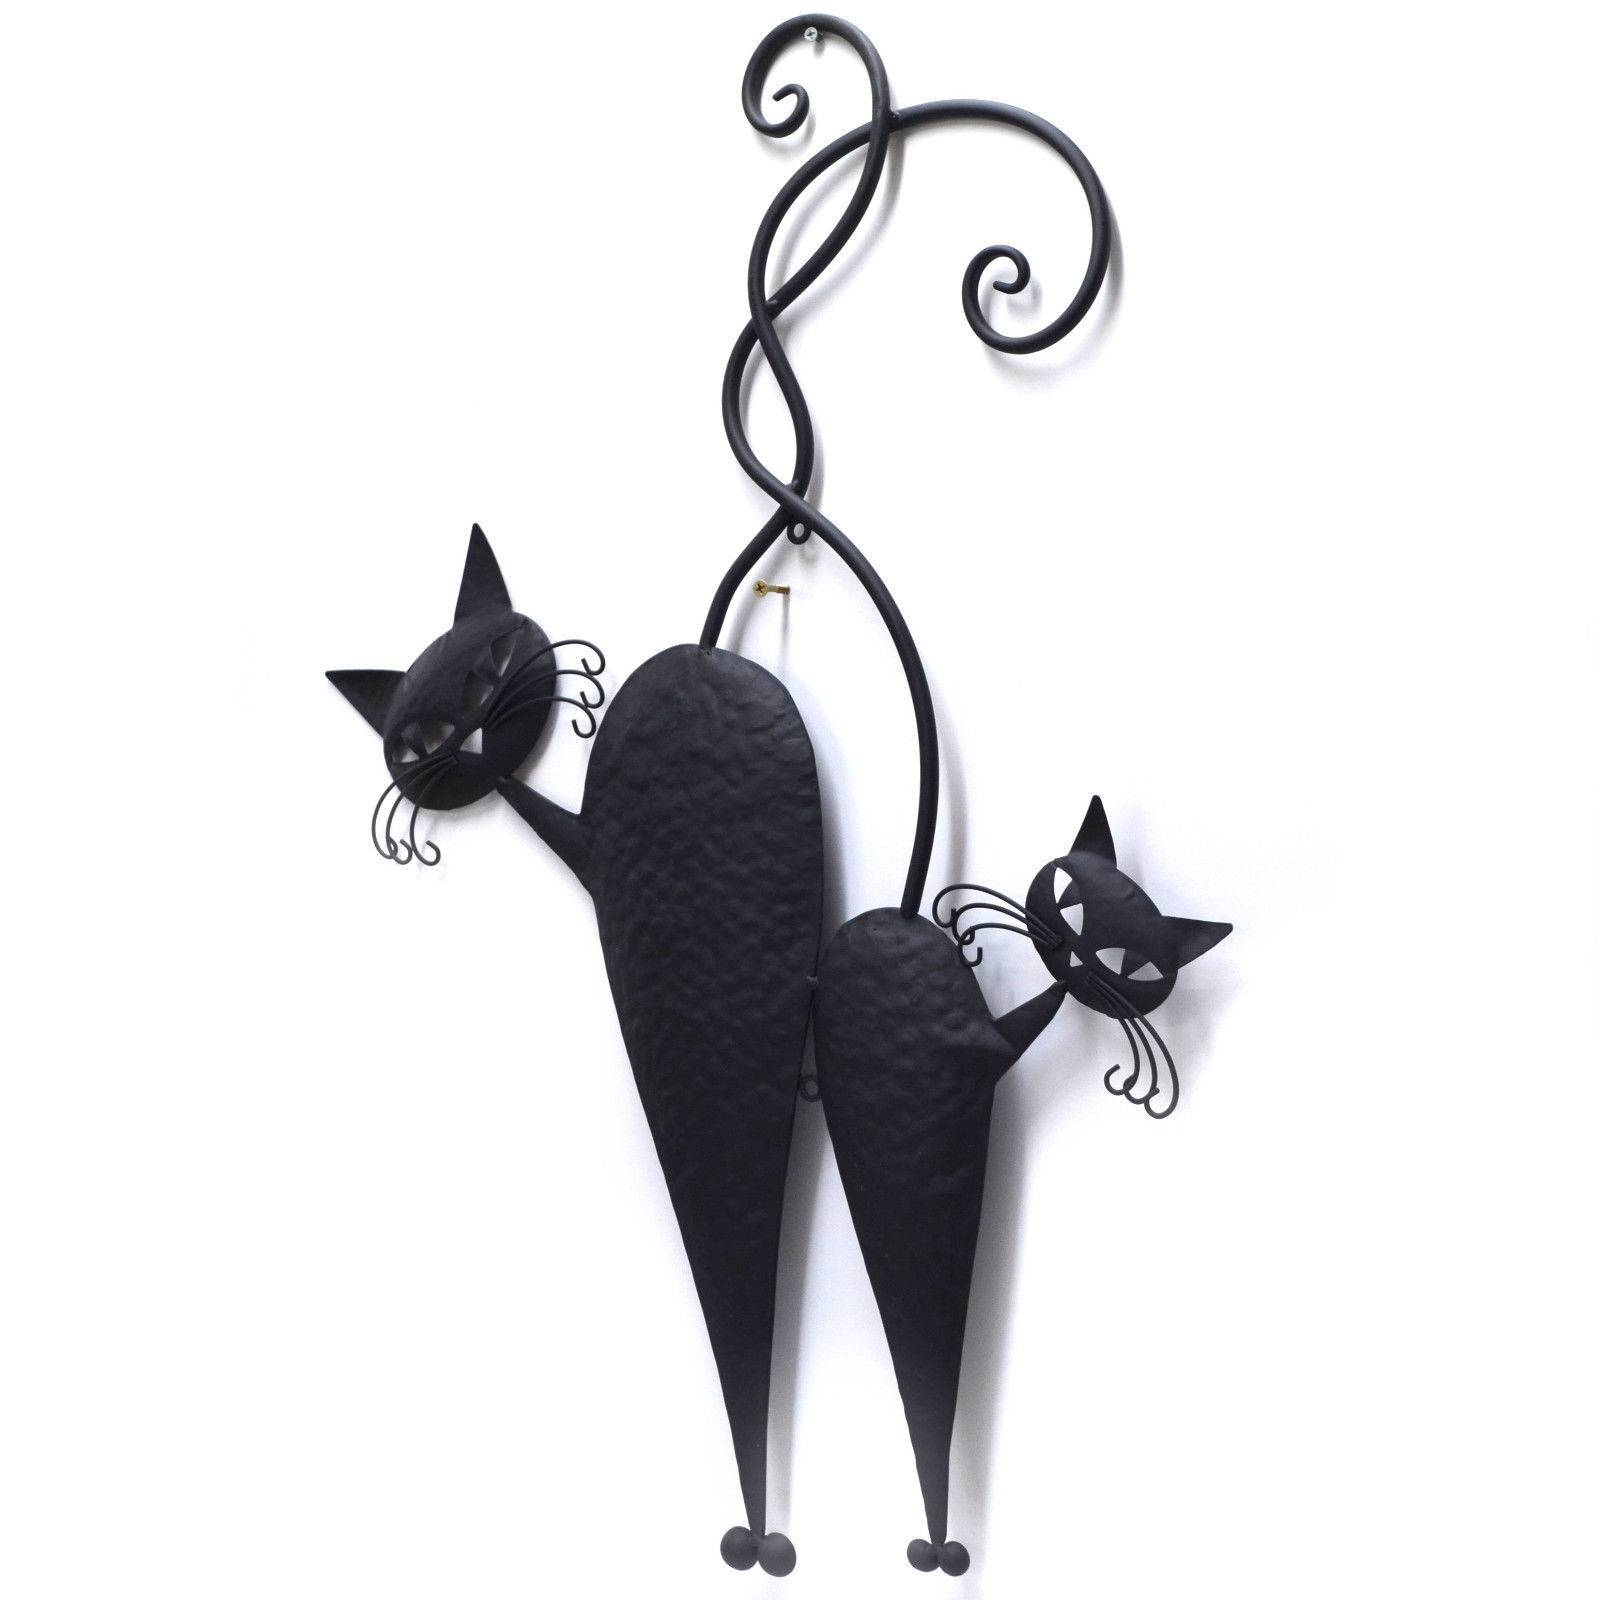 Cat Pair Metal Wall Art Black 71Cm Throughout Most Popular Cat Metal Wall Art (View 8 of 20)